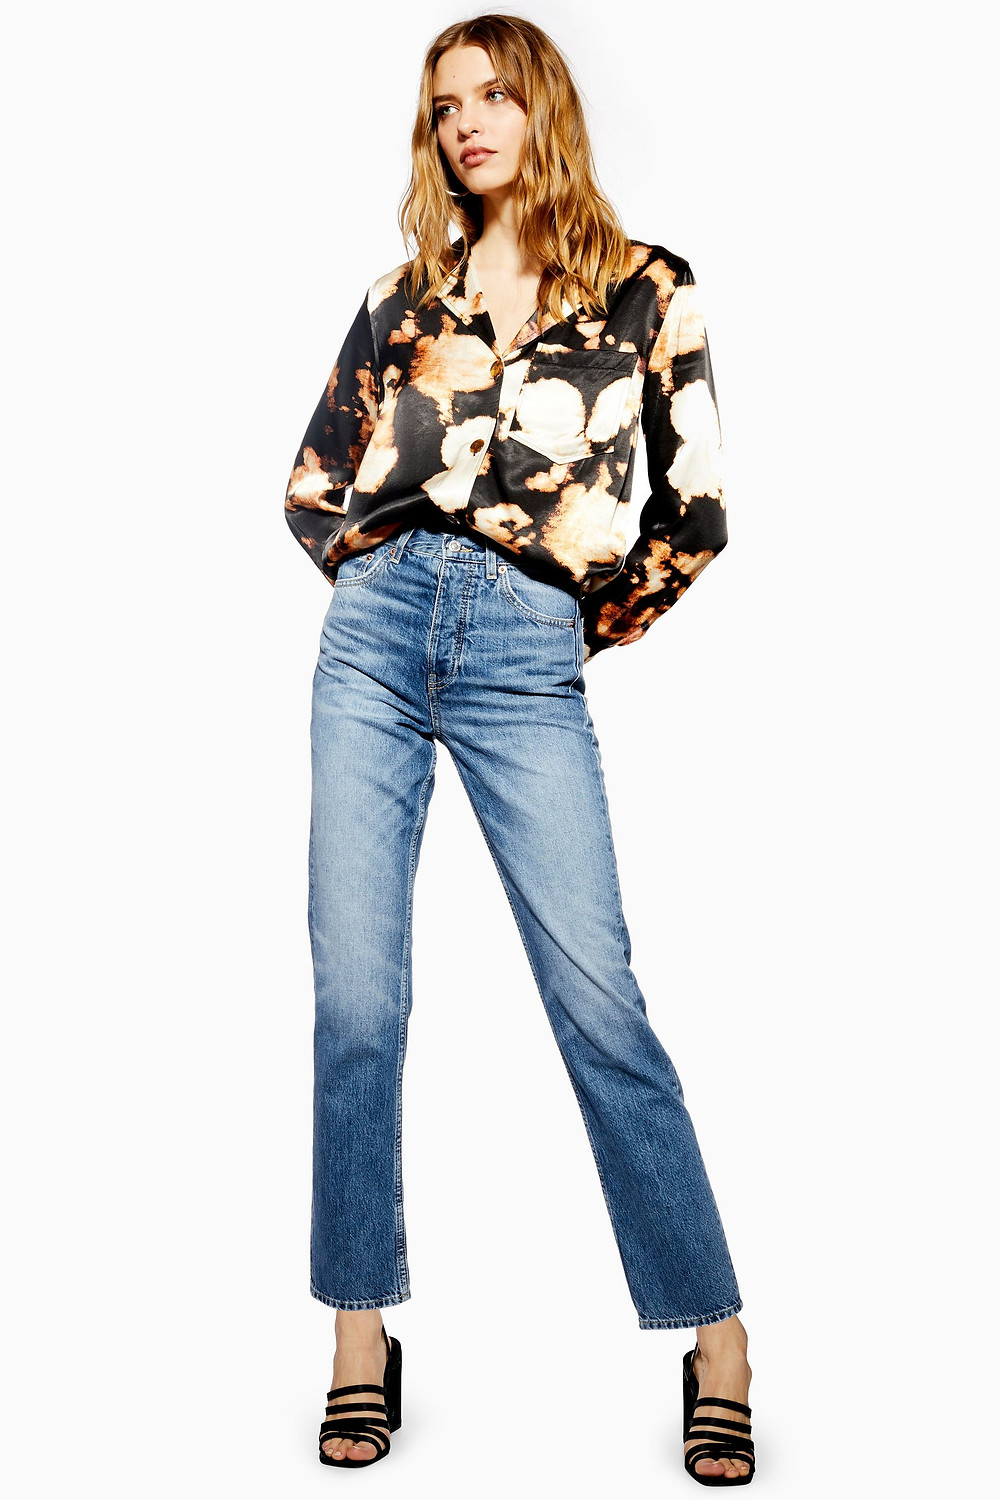 Topshop Mid Blue Editor Jeans (49£/68€)